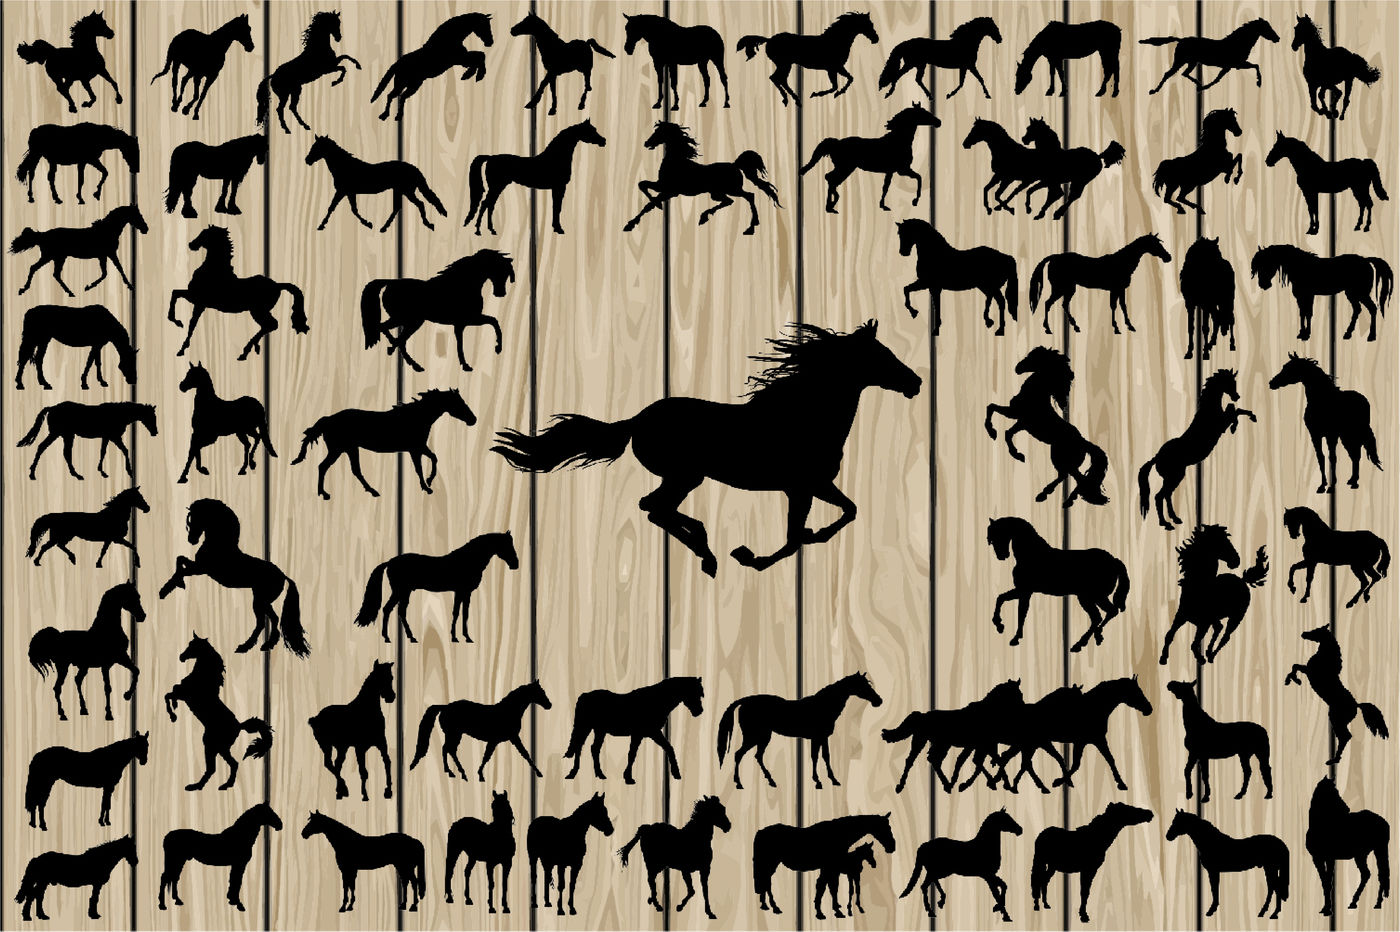 62 Horse Silhouette Svg Horse Vector Running Horse Svg Cutting